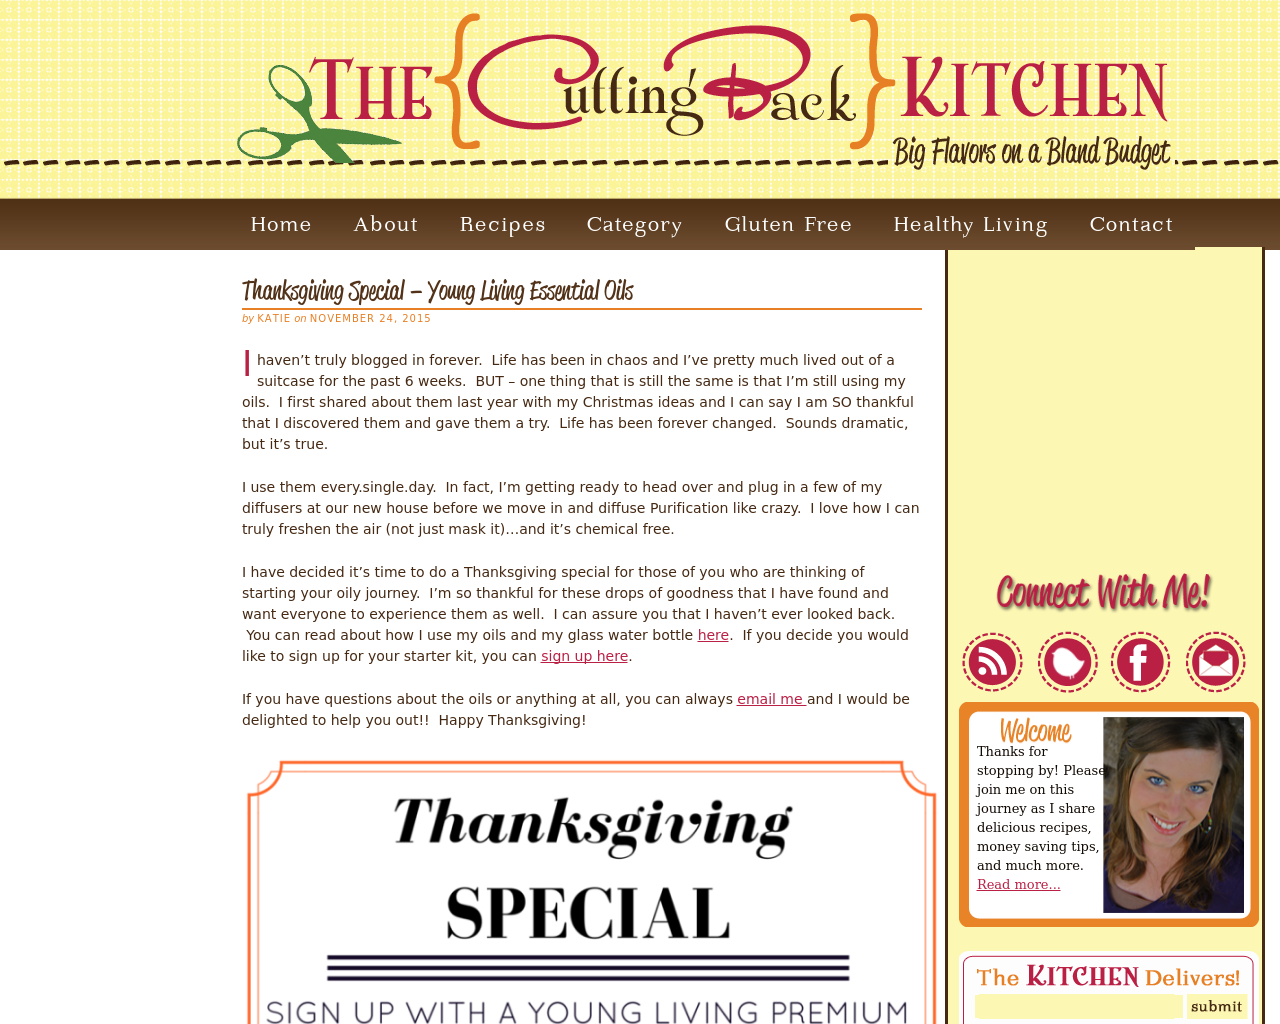 The-Cutting-Back-Kitchen-Advertising-Reviews-Pricing